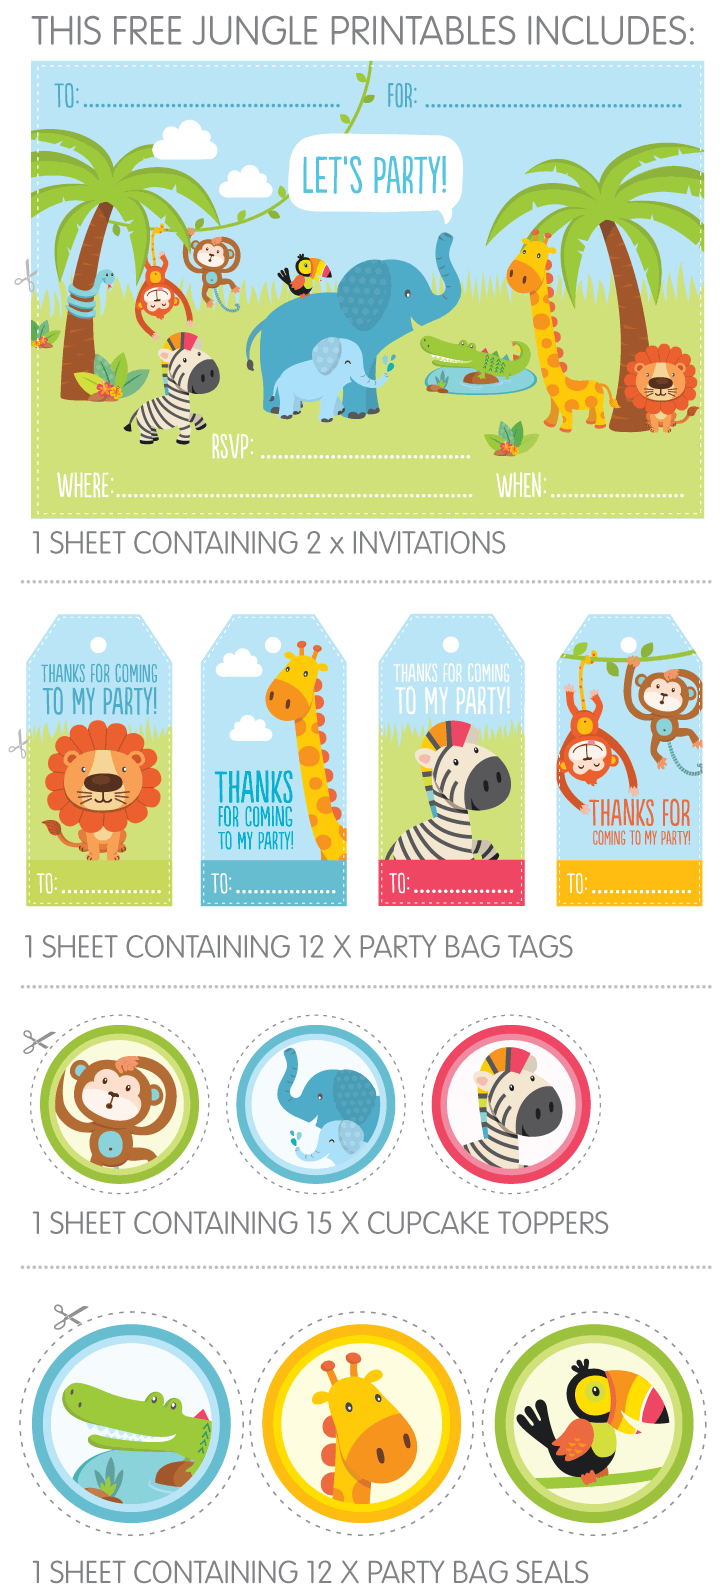 Free Jungle Party Invitation Printables | Give-Aways | Jungle Party - Free Jungle Printables